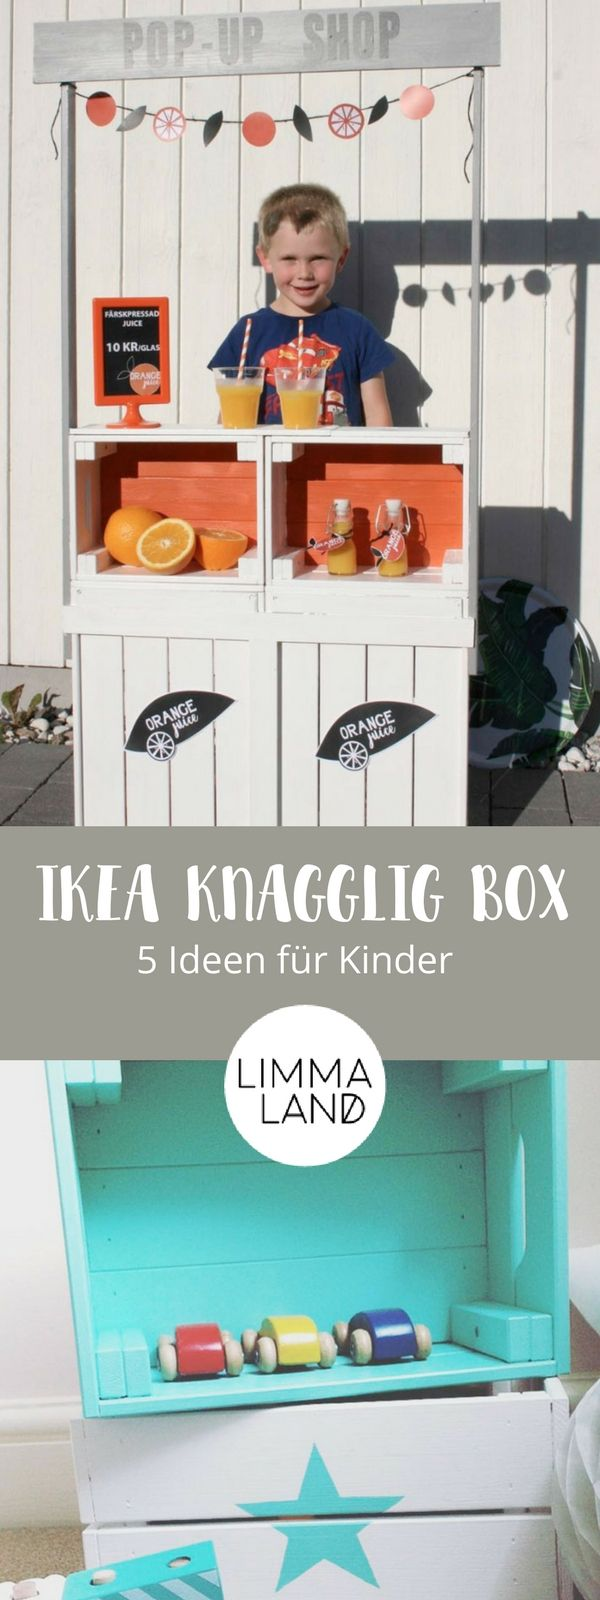 ikea knagglig die 5 besten hack ideen f r kinder in 2018 ikea hack knagglig kiste. Black Bedroom Furniture Sets. Home Design Ideas